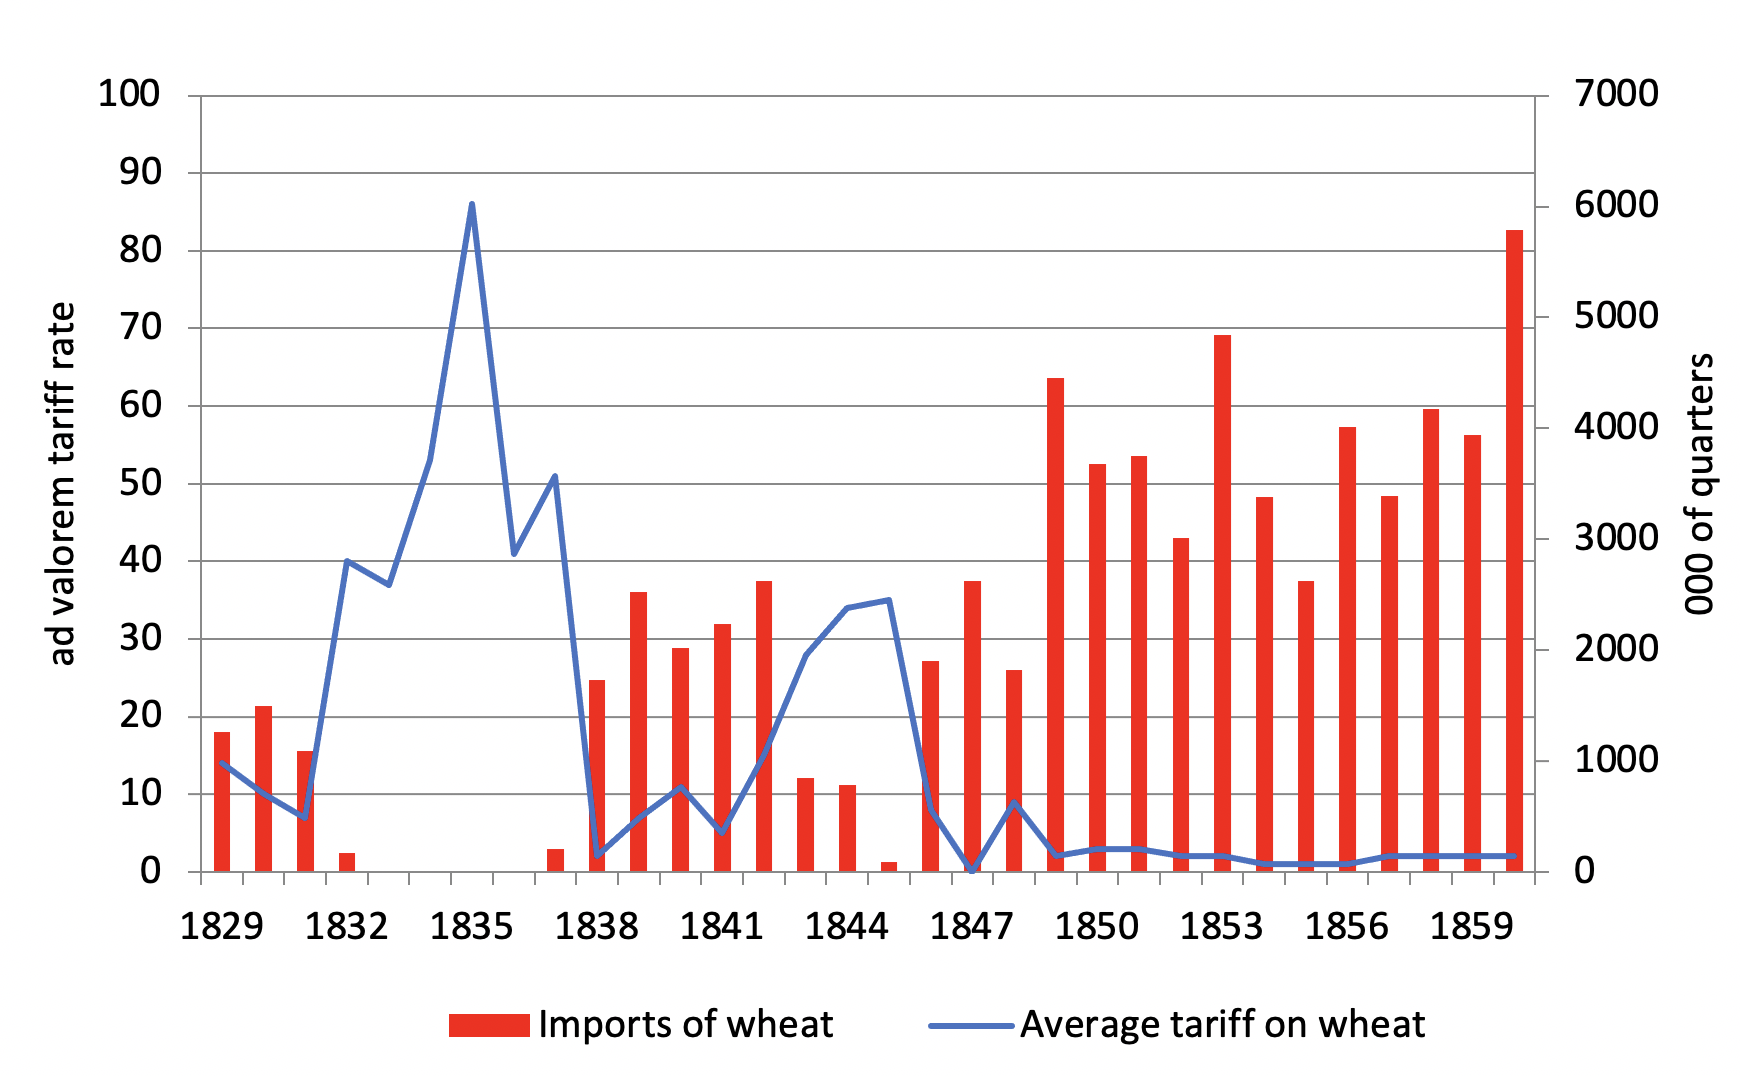 A quantitative assessment of the repeal of the Corn Laws 2